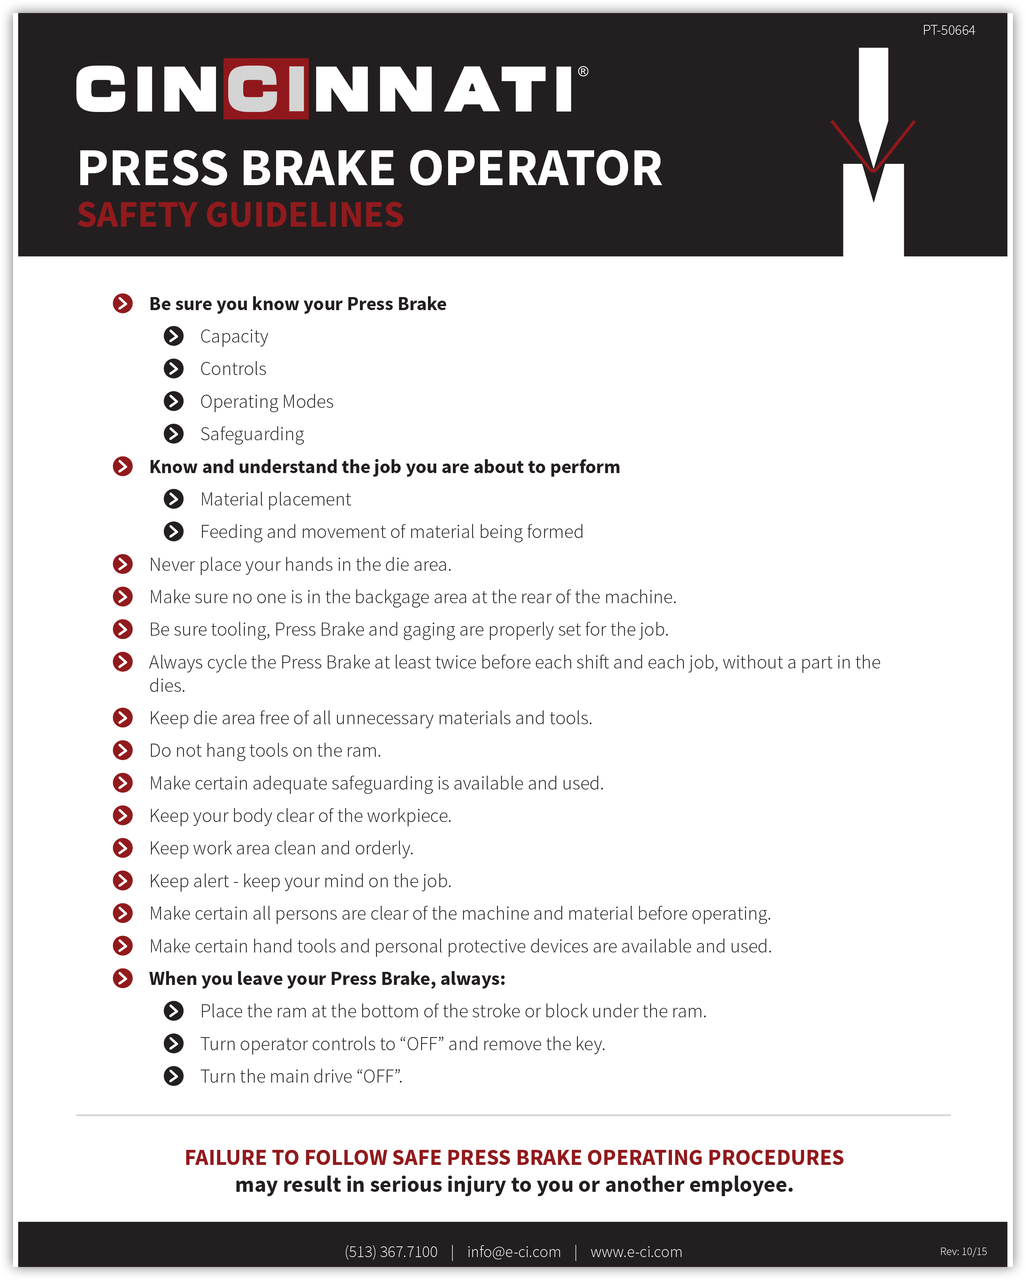 PT-50664_Press Brake Safety Guidelines